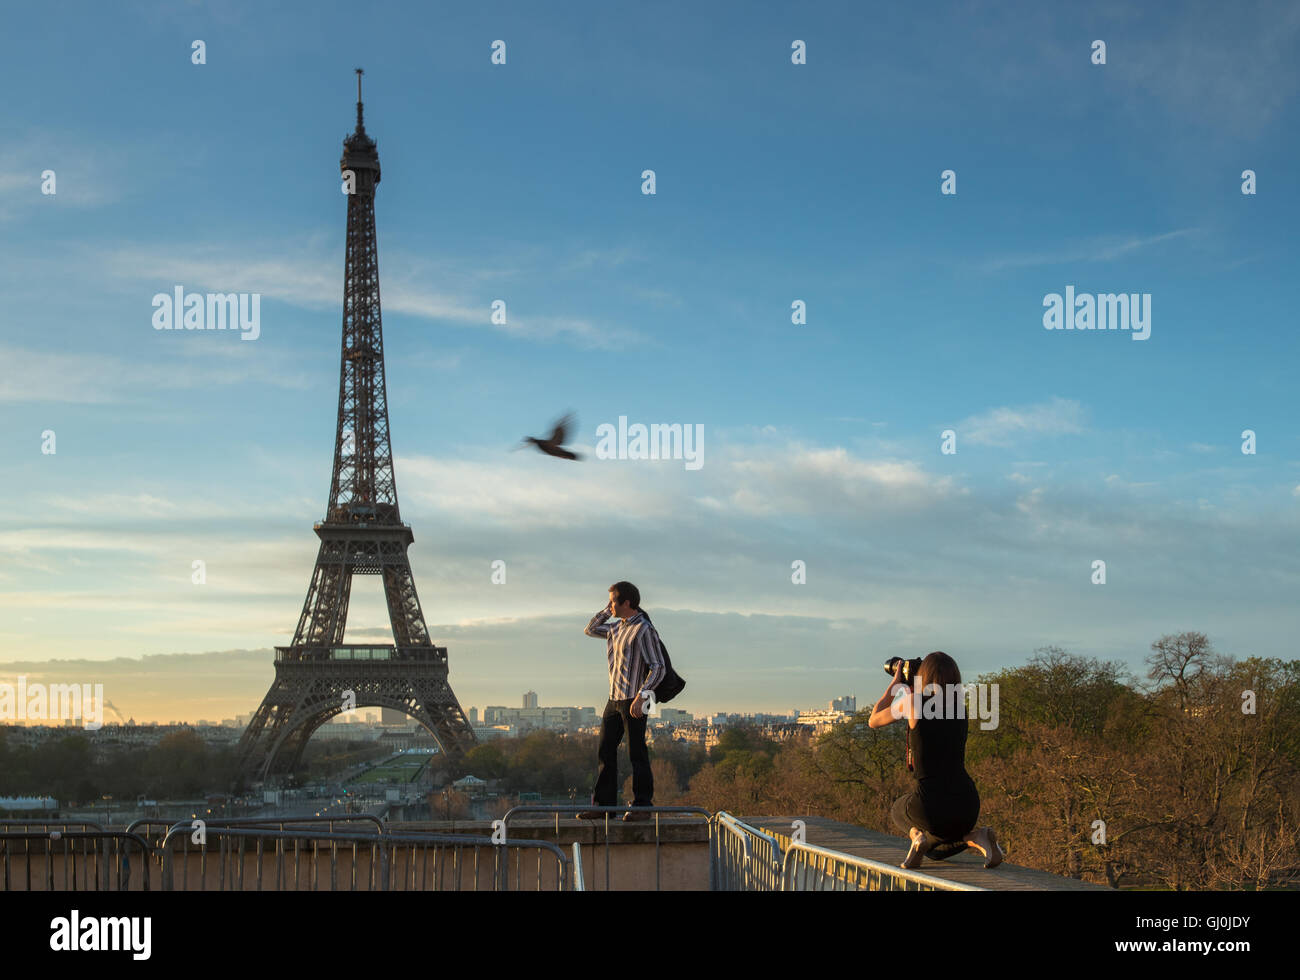 fashion photography and bird at the Palais de Chaillot with the Eiffel Tower as backdrop, Paris, France - Stock Image